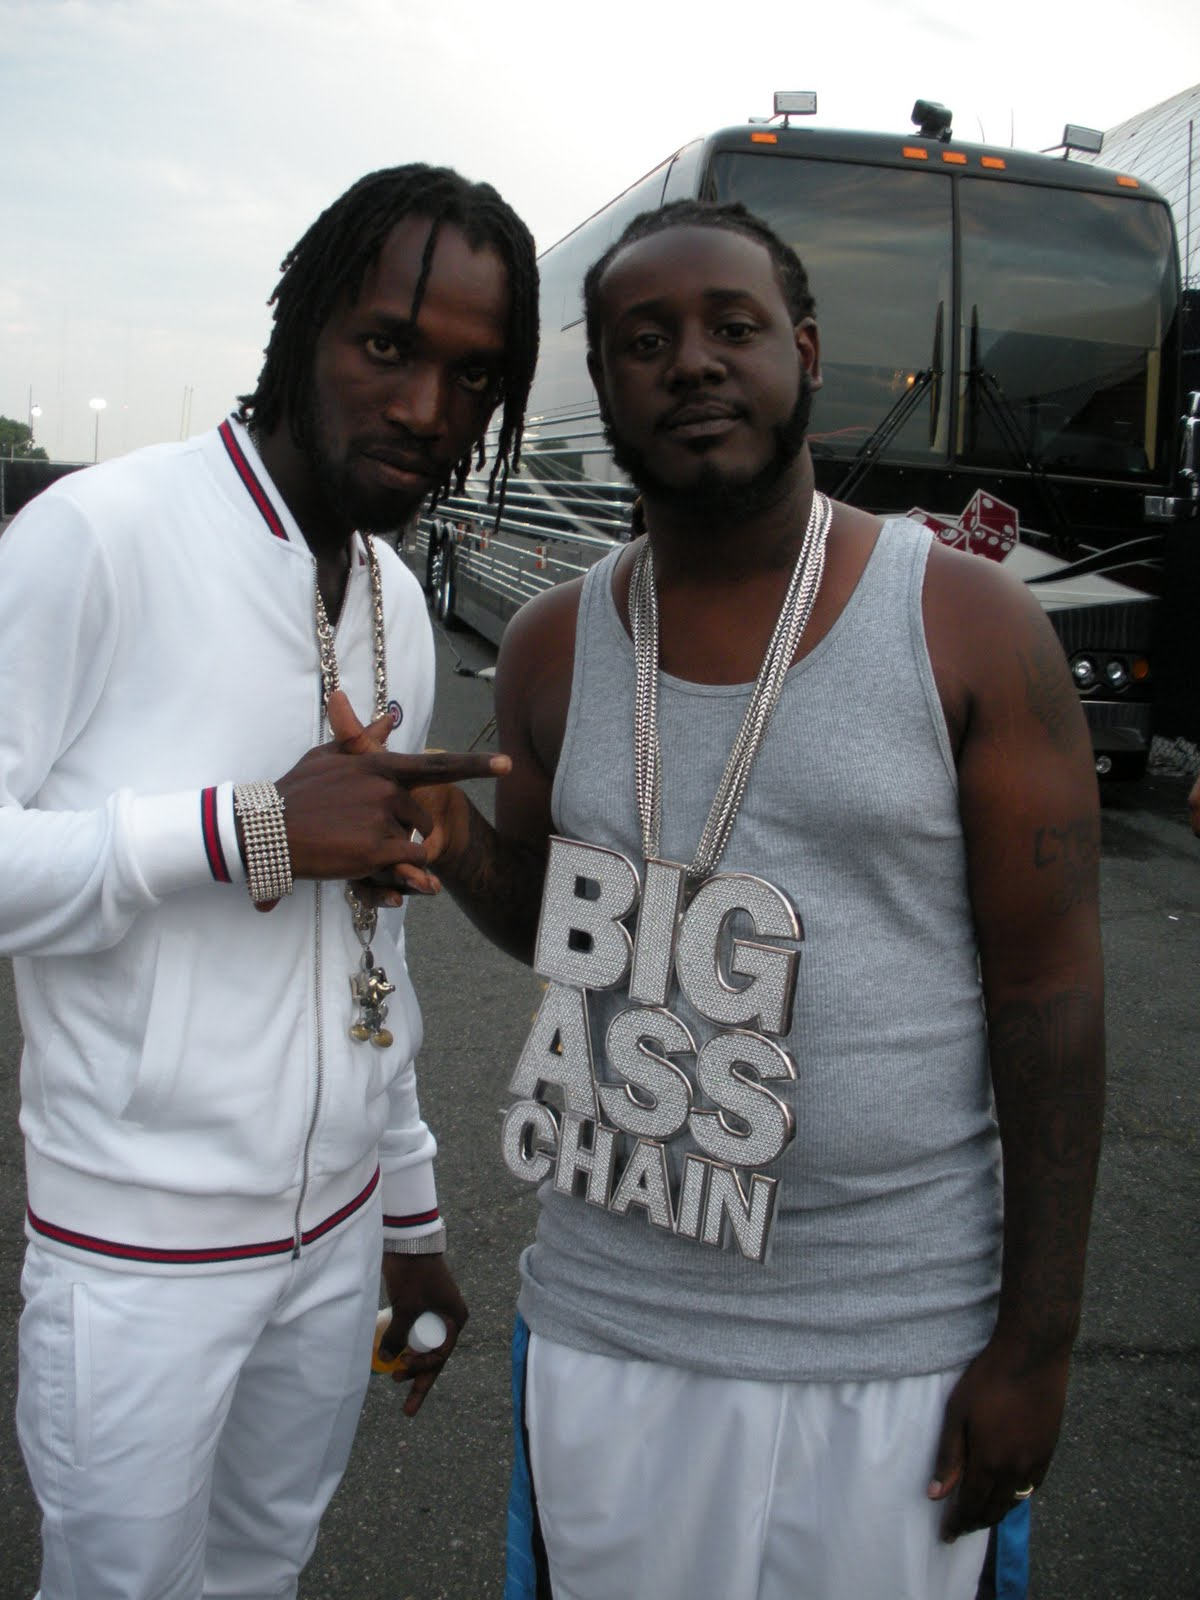 Tpain big ass chain